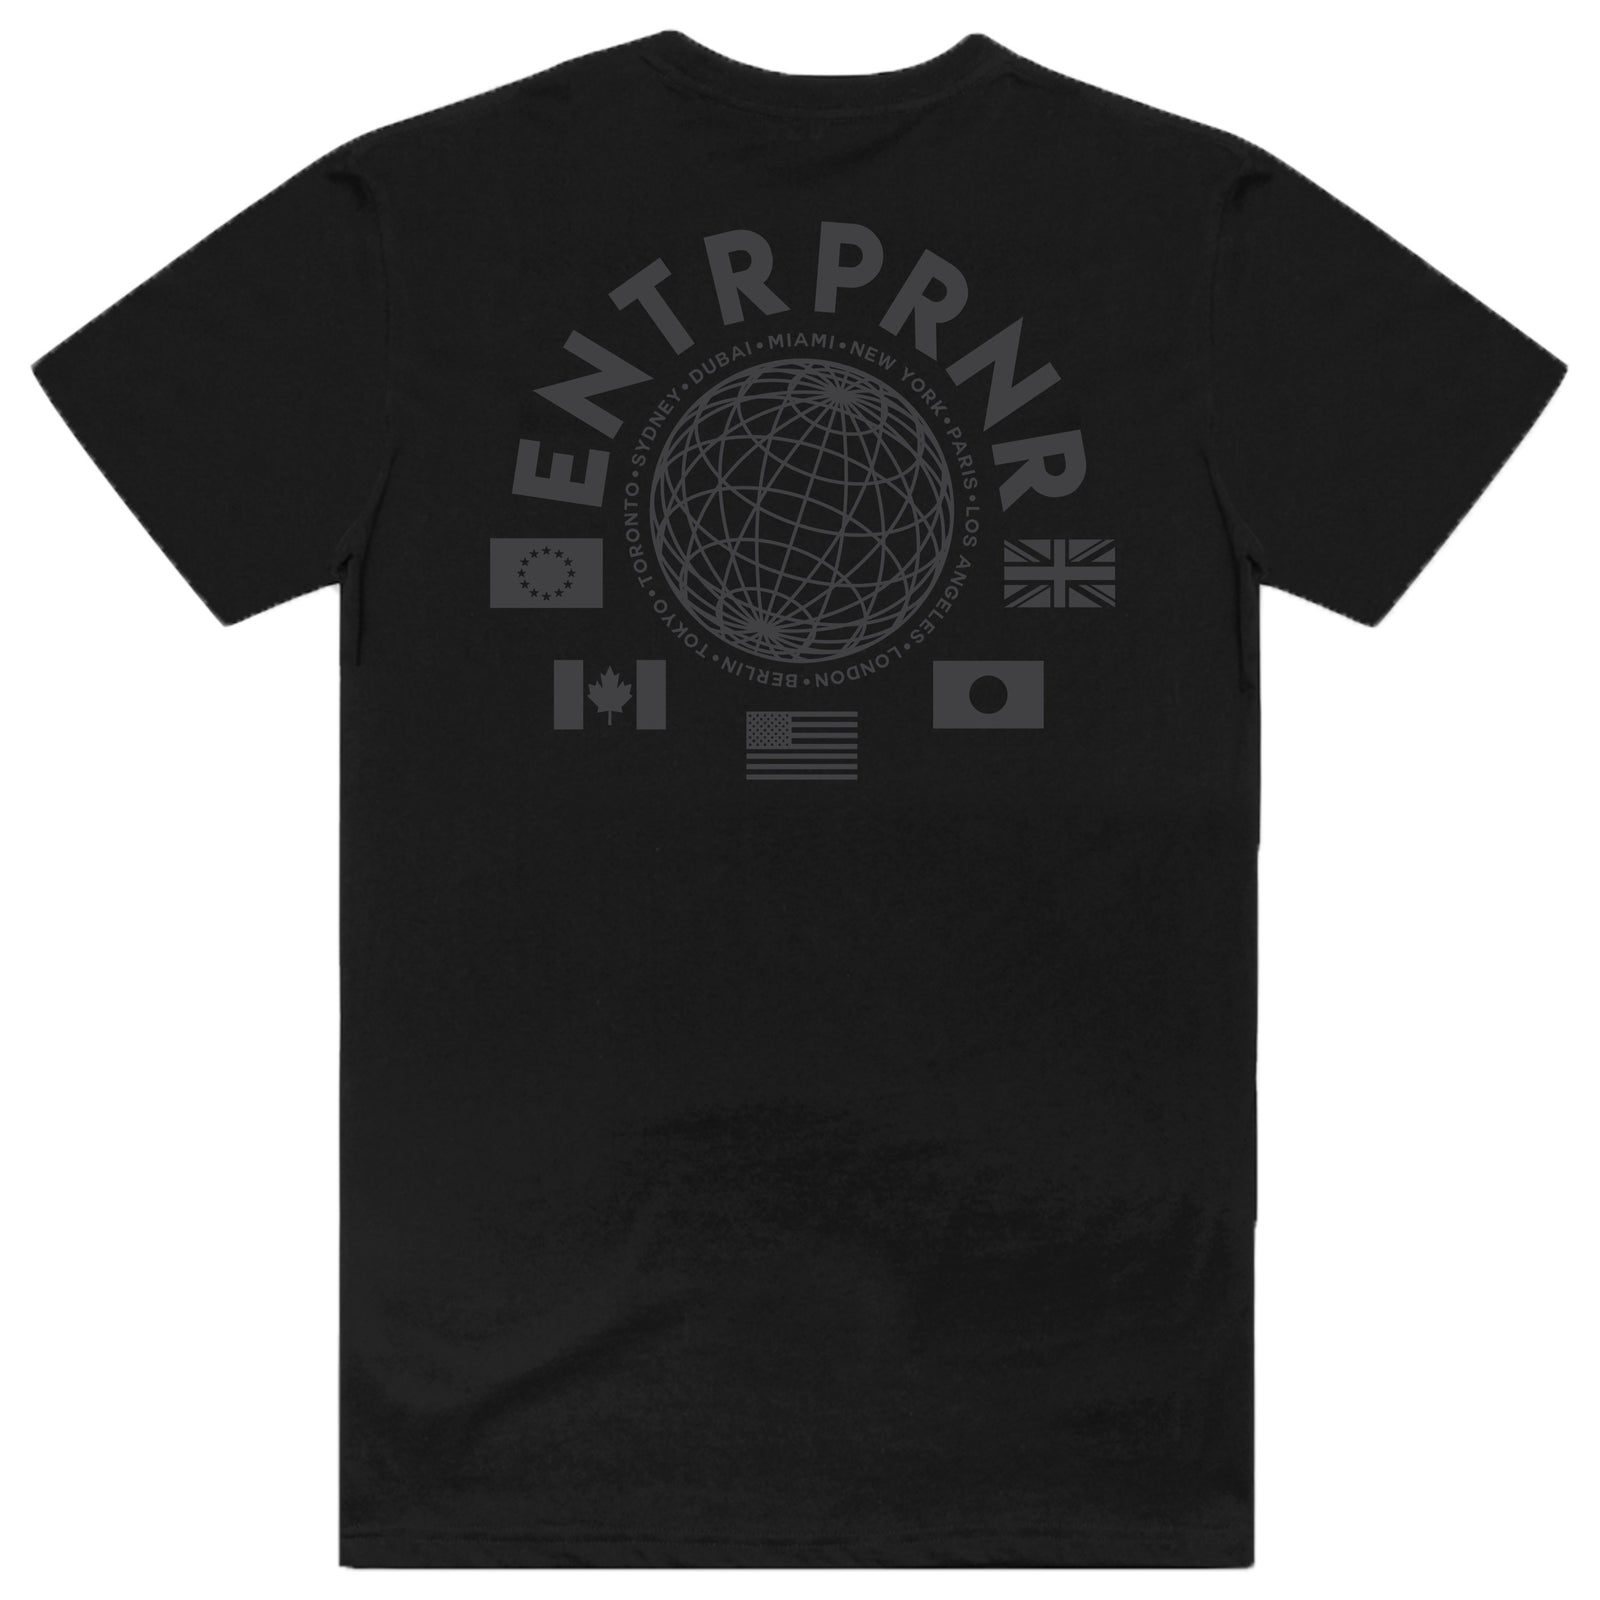 ENTRPRNR WorldWide Tee - Blackout - ENTRPRNR® | The Entrepreneur's Clothing Brand. | Stagnancy is the Enemy. Action is King.